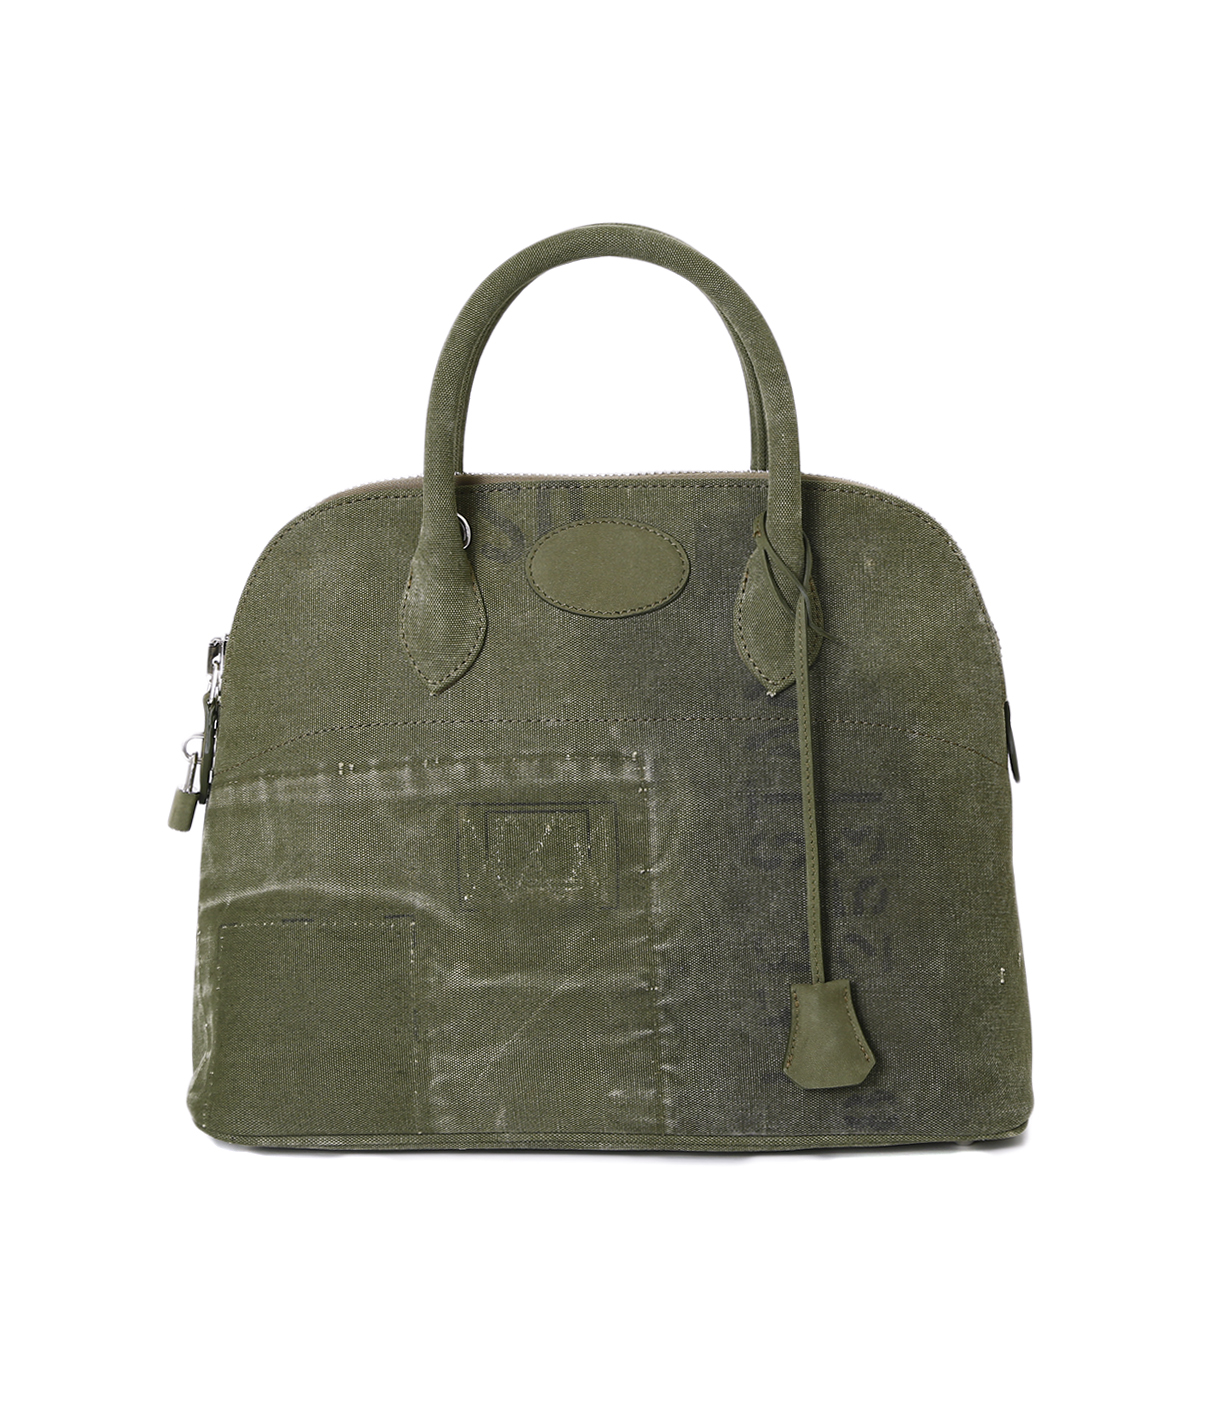 DAILYBAG (M) NO LOGO